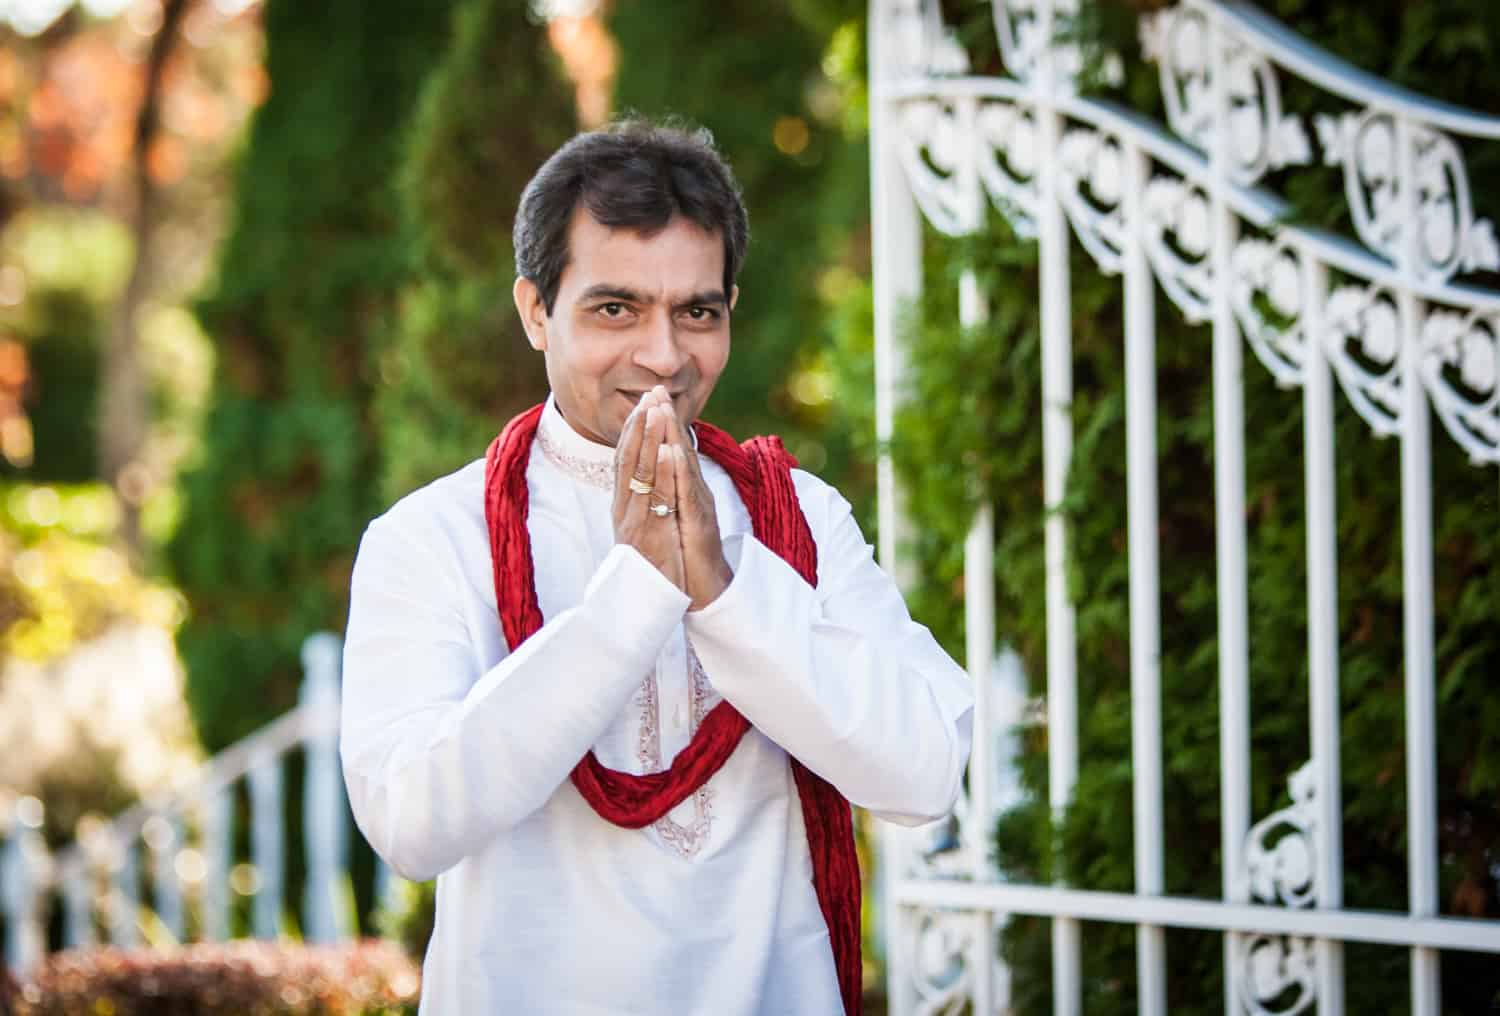 Man with praying hands and traditional Indian attire in front of gate